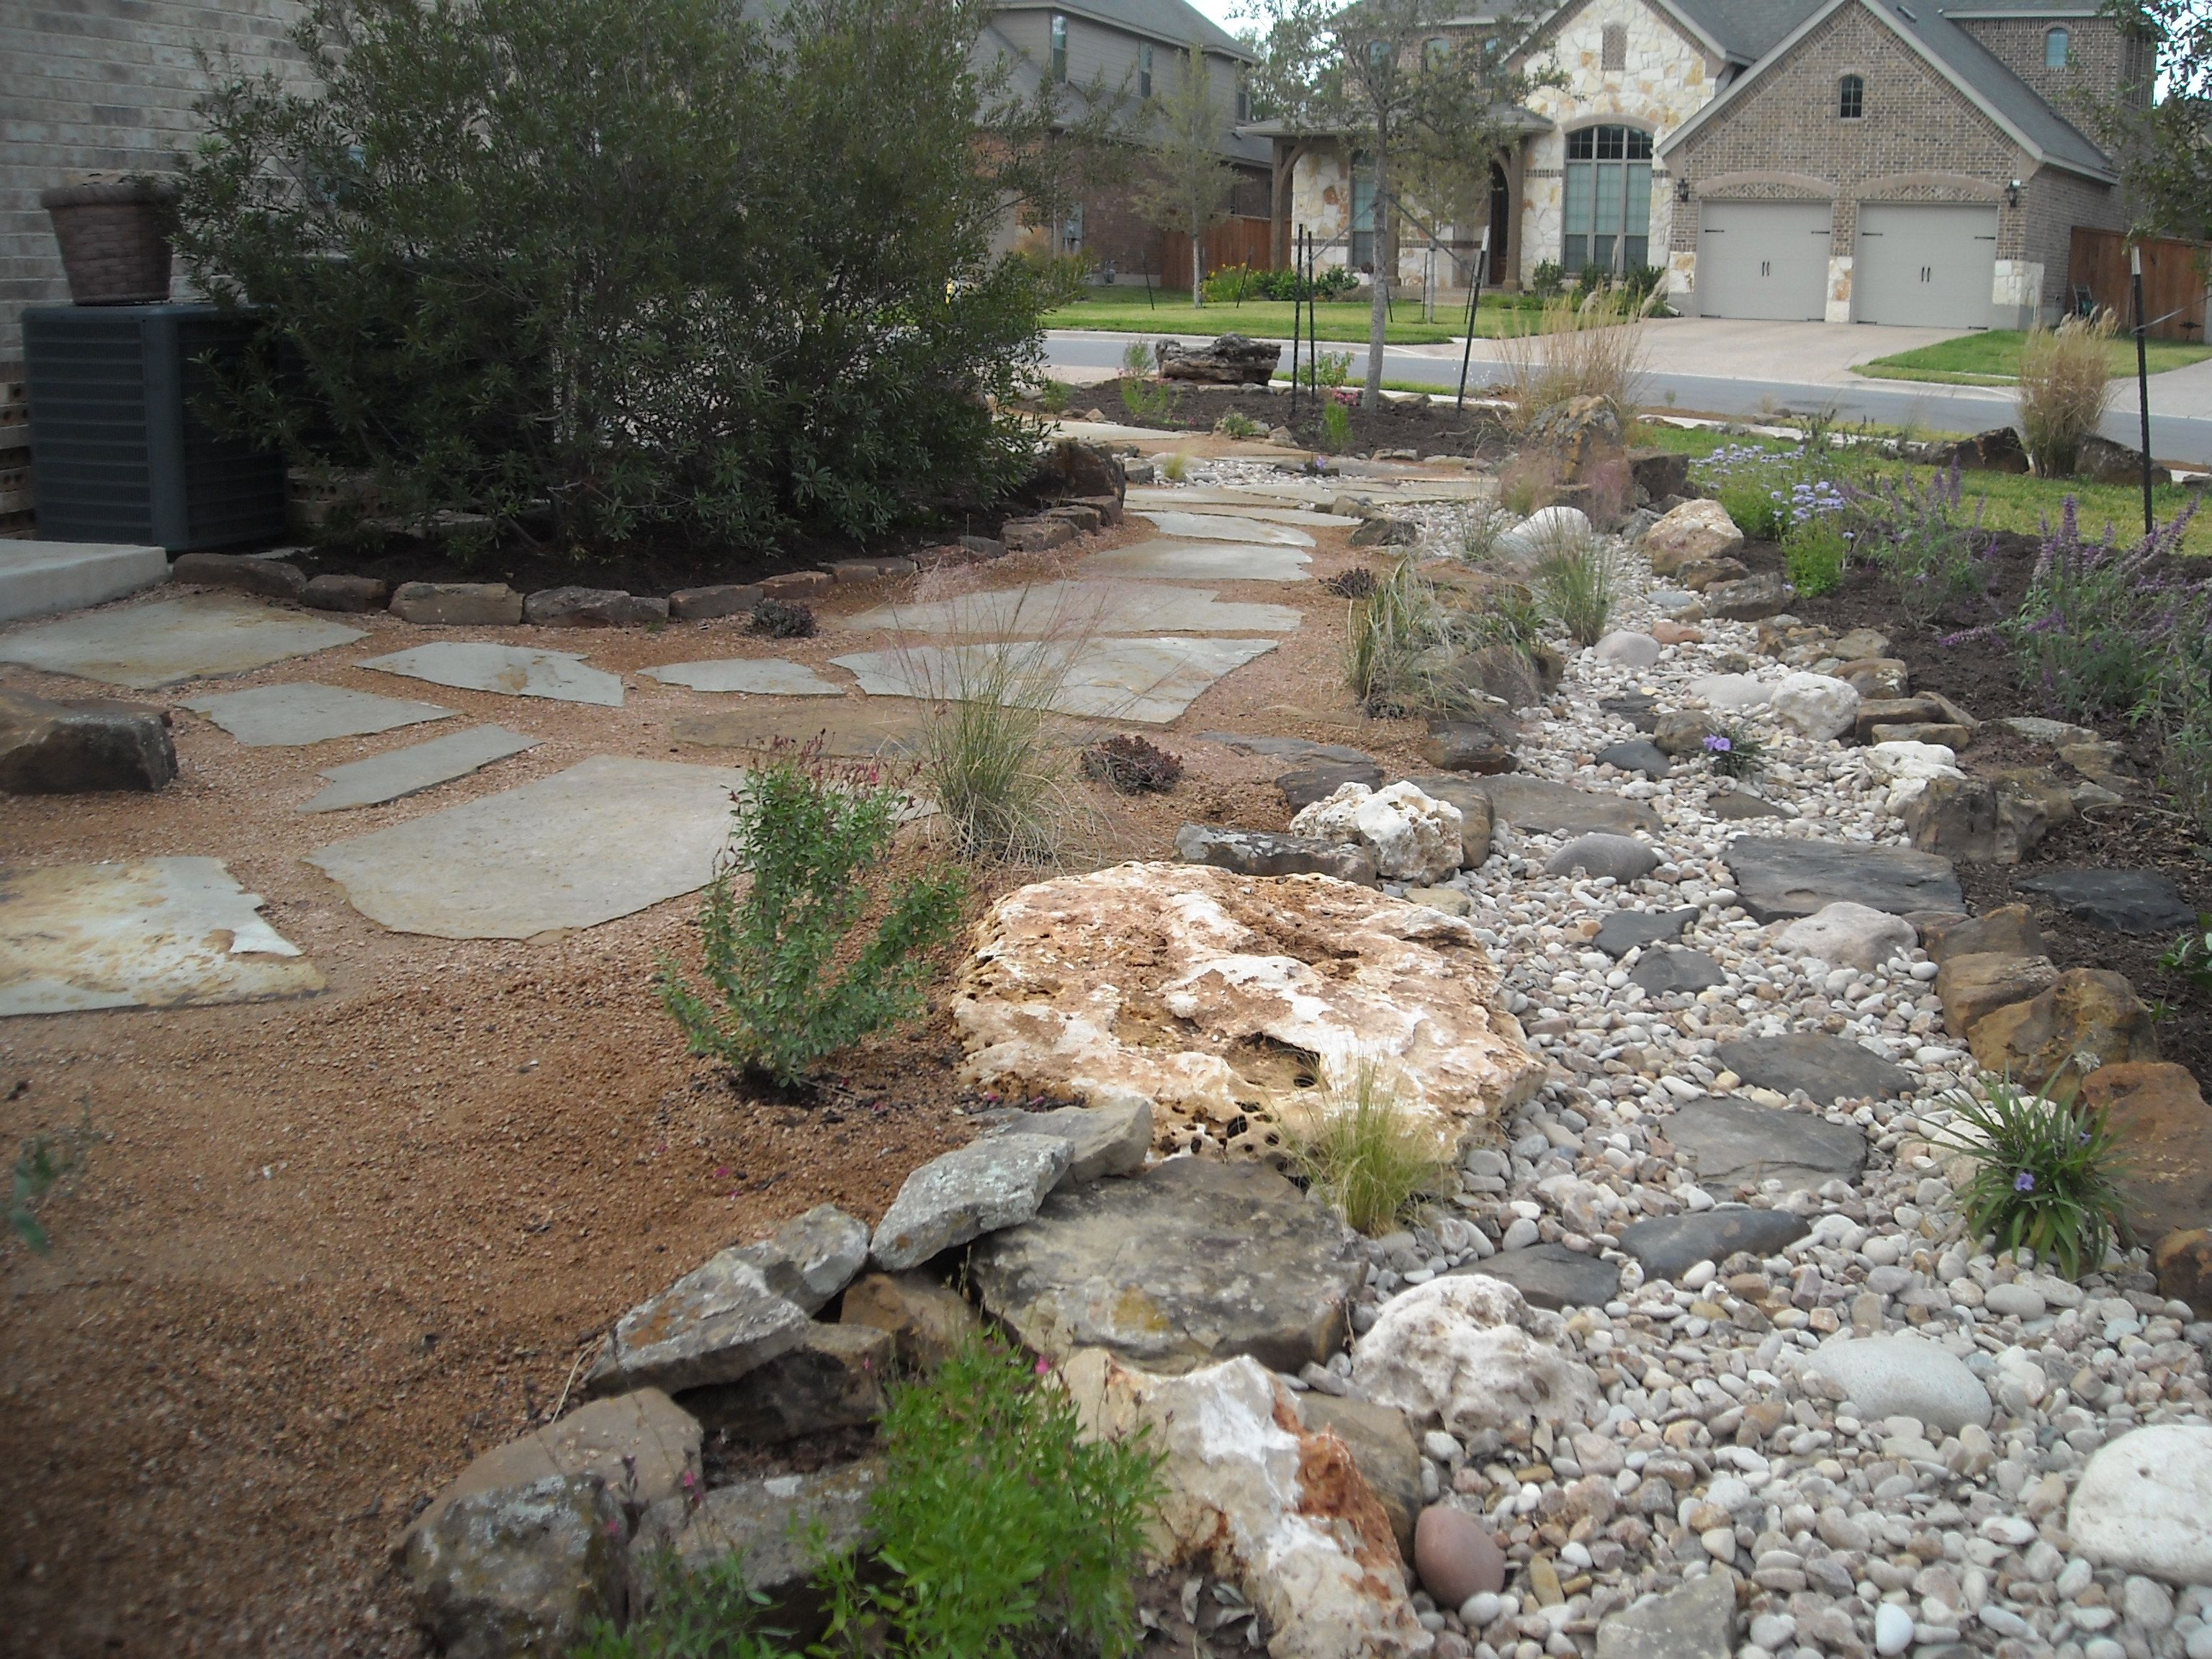 Front Yard Landscape   Dry Creek Bed With A Natural Flagstone Patio Set In  Decomposed Granite